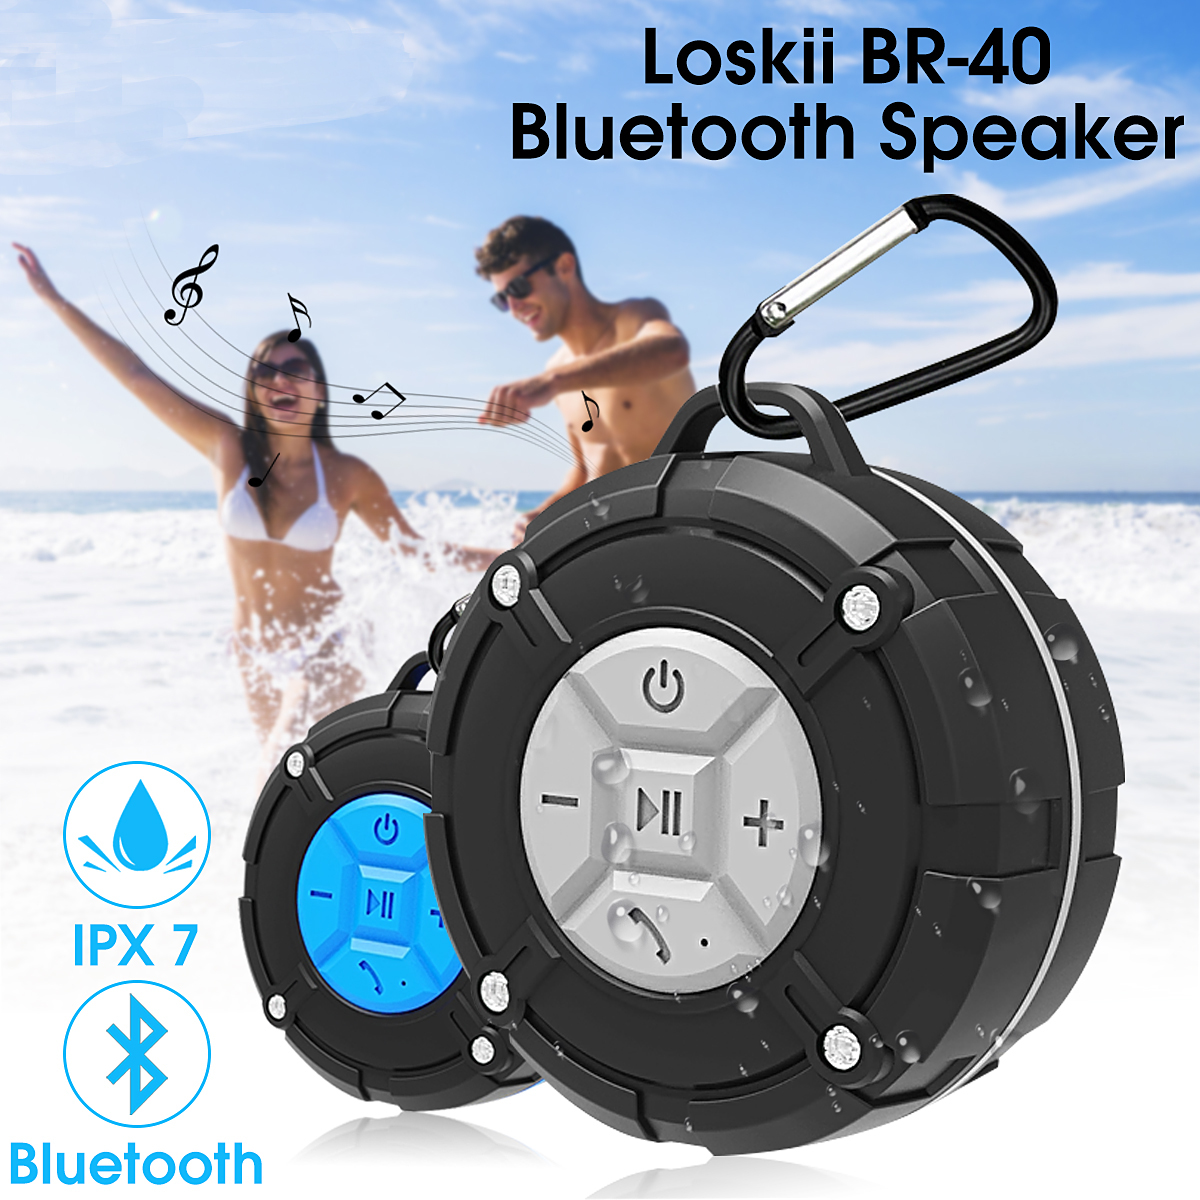 Outdoor Waterproof bluetooth Speaker IPX7 Portable Wireless Stereo Loudspeaker Shower Soundbar Bicycle Speakers with Suction Cup